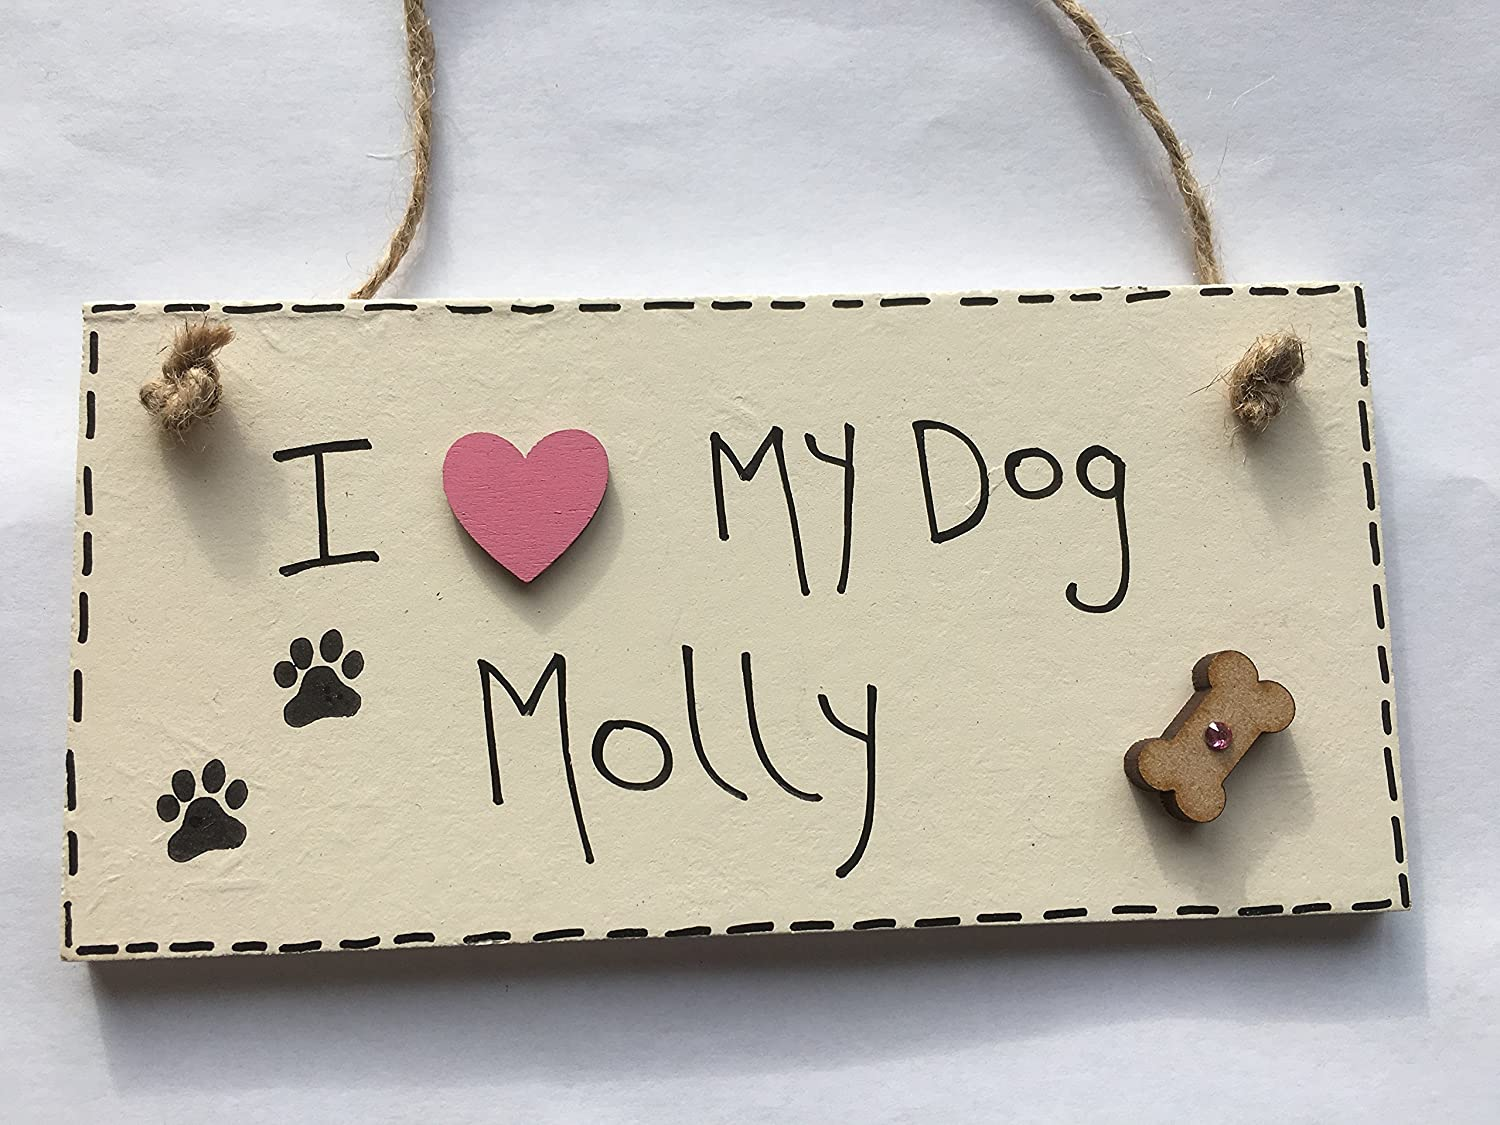 Amazon.com: MadeAt94 'I Love My Dog Molly' Cream Plaque - Personalised Dog gifts for Dog lovers: Handmade